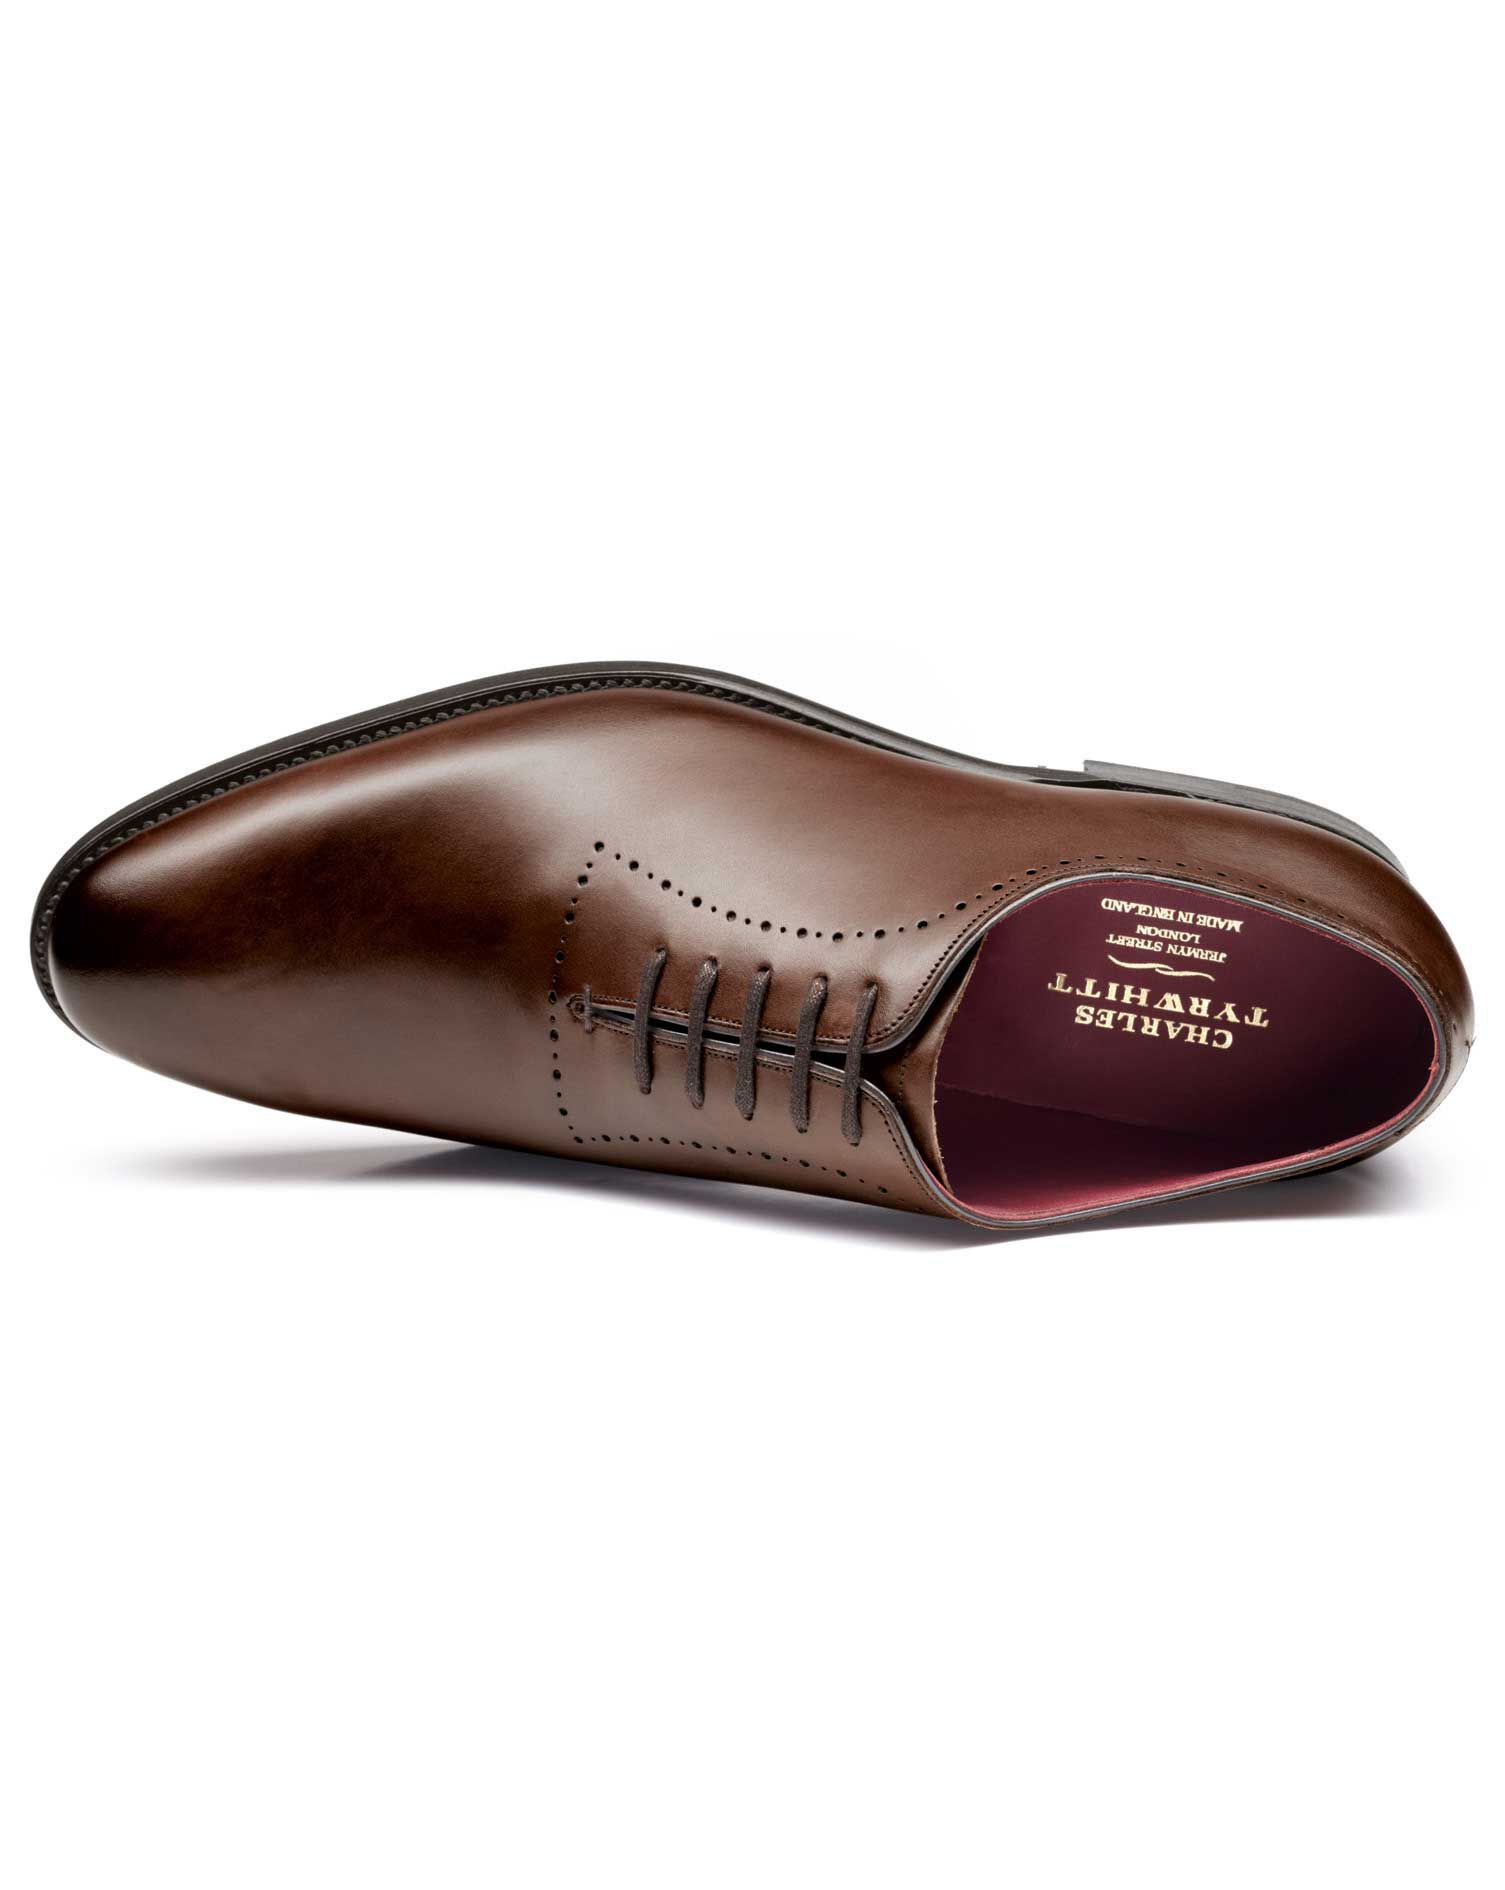 Brown Richmond Calf Leather Wholecut Shoes Size 9 by Charles Tyrwhitt